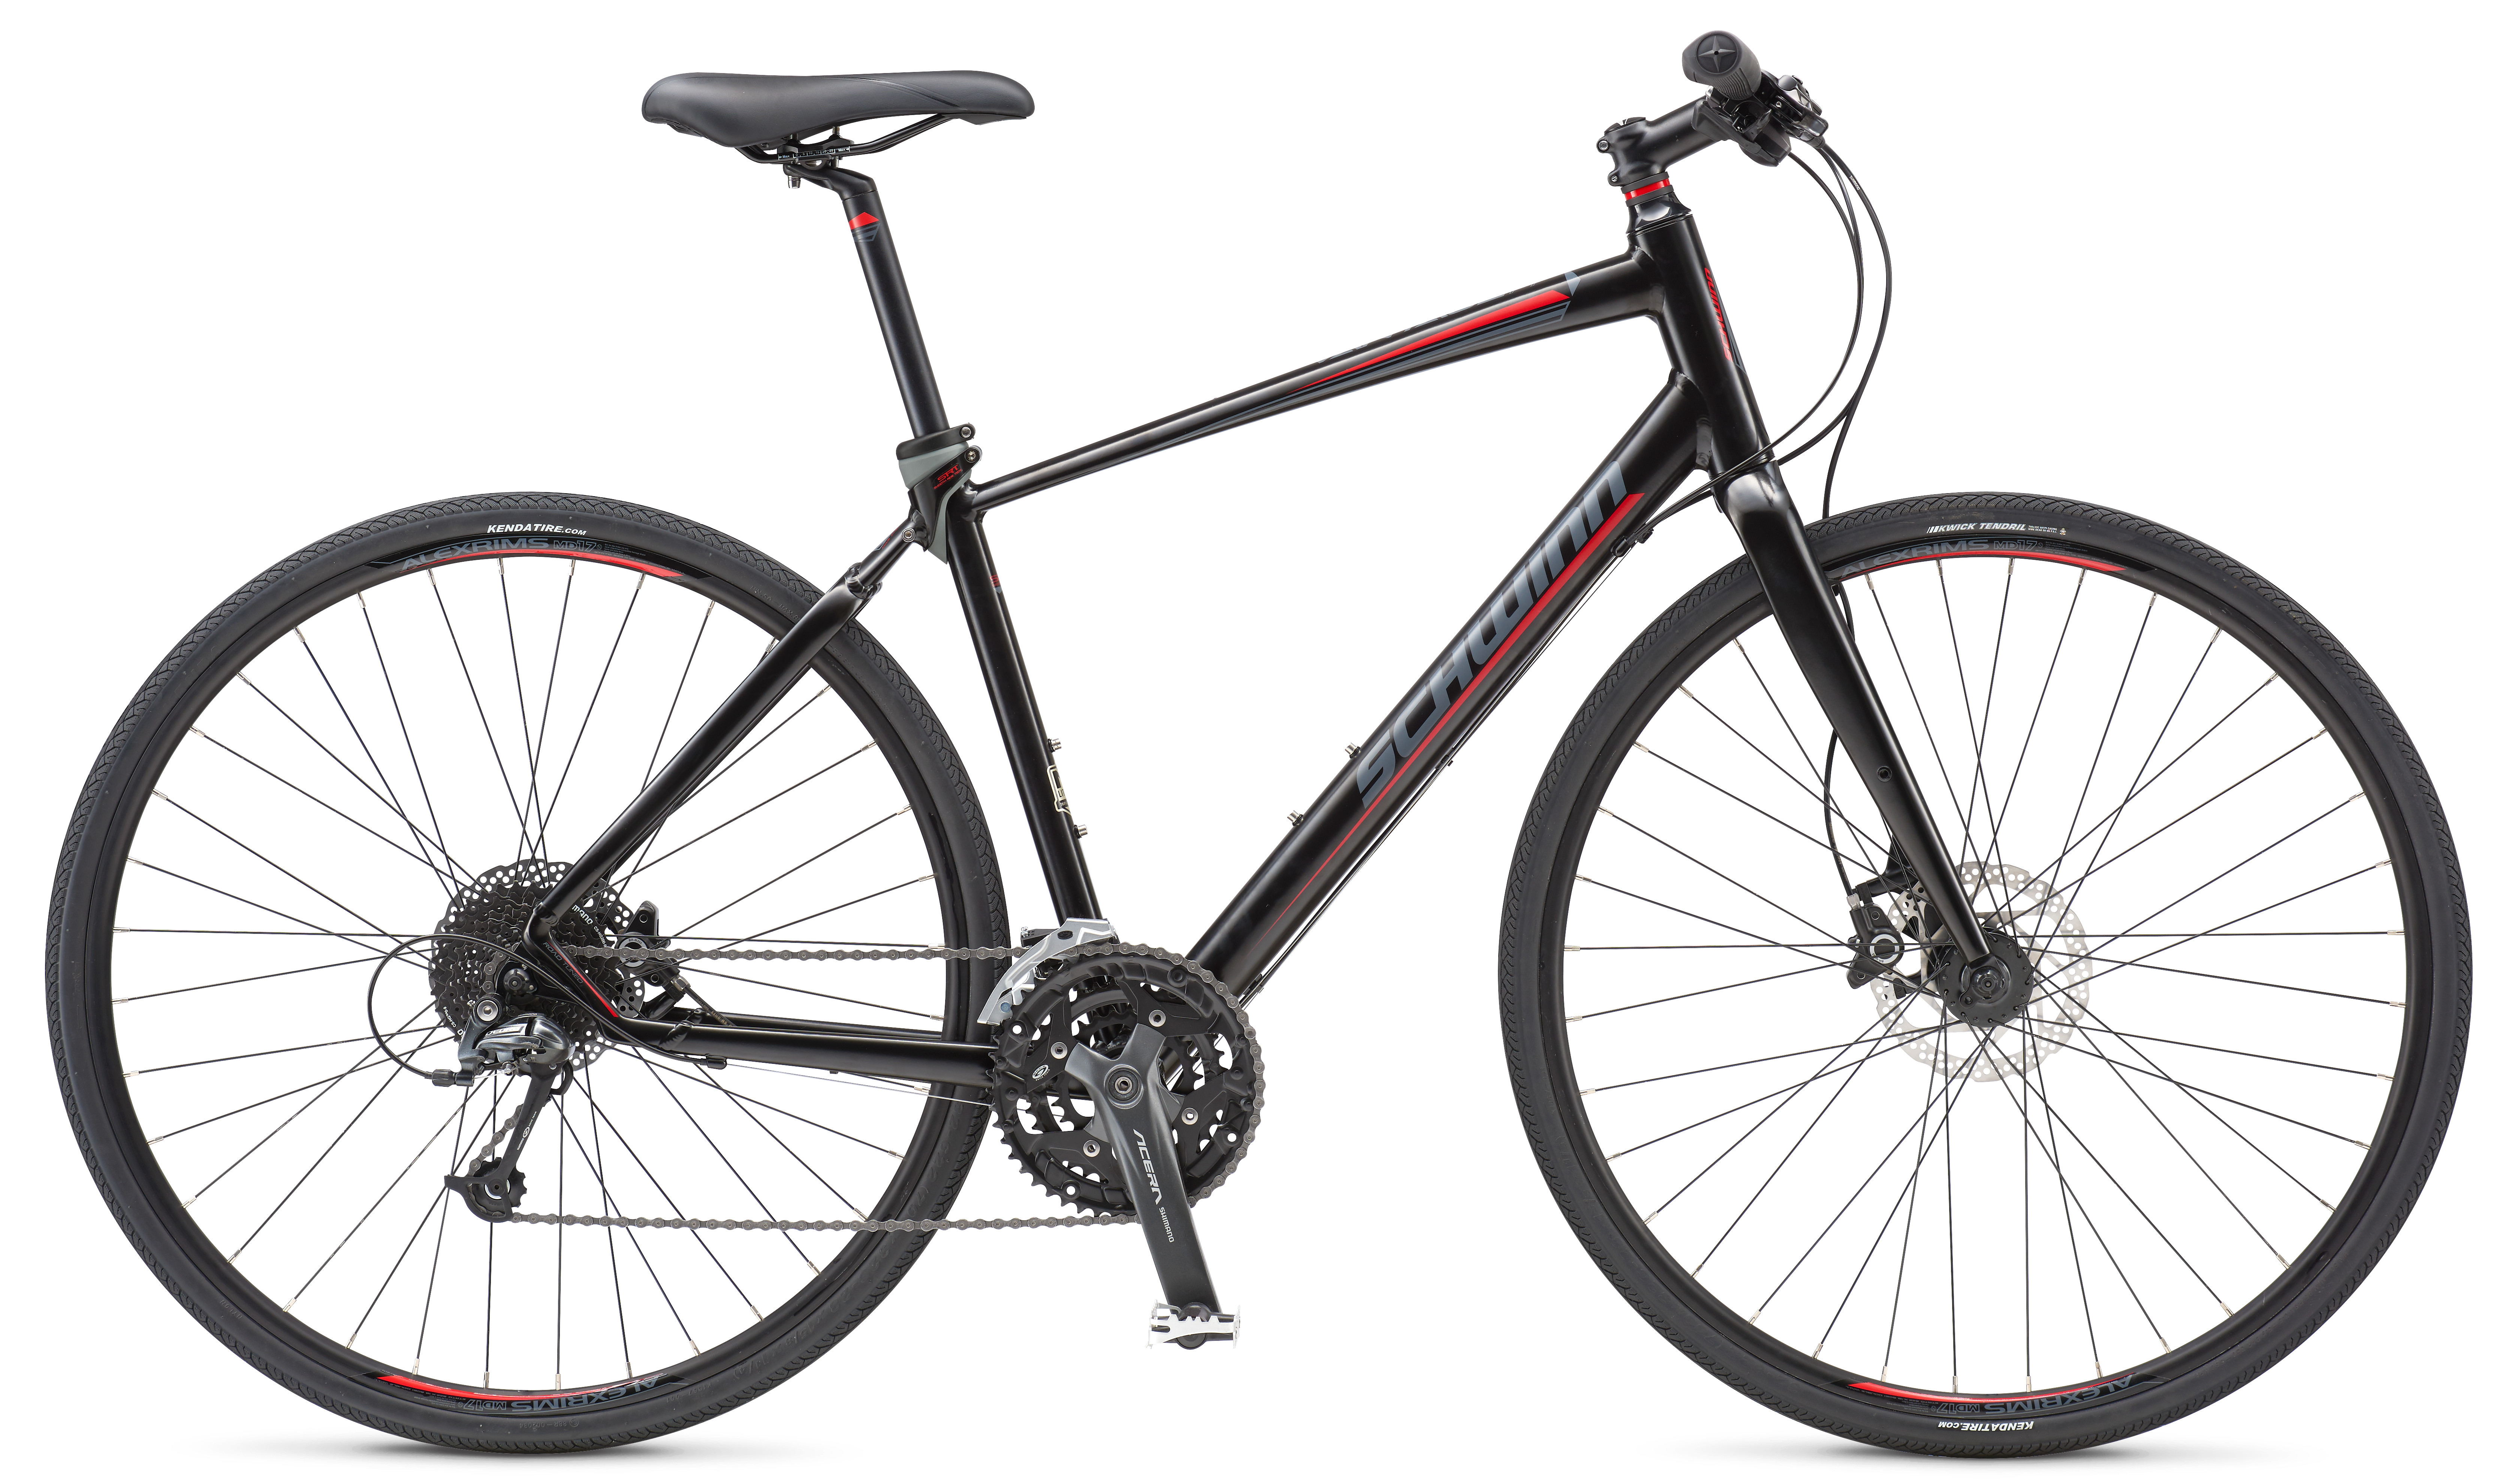 Schwinn launches fitness bike with rear suspension system